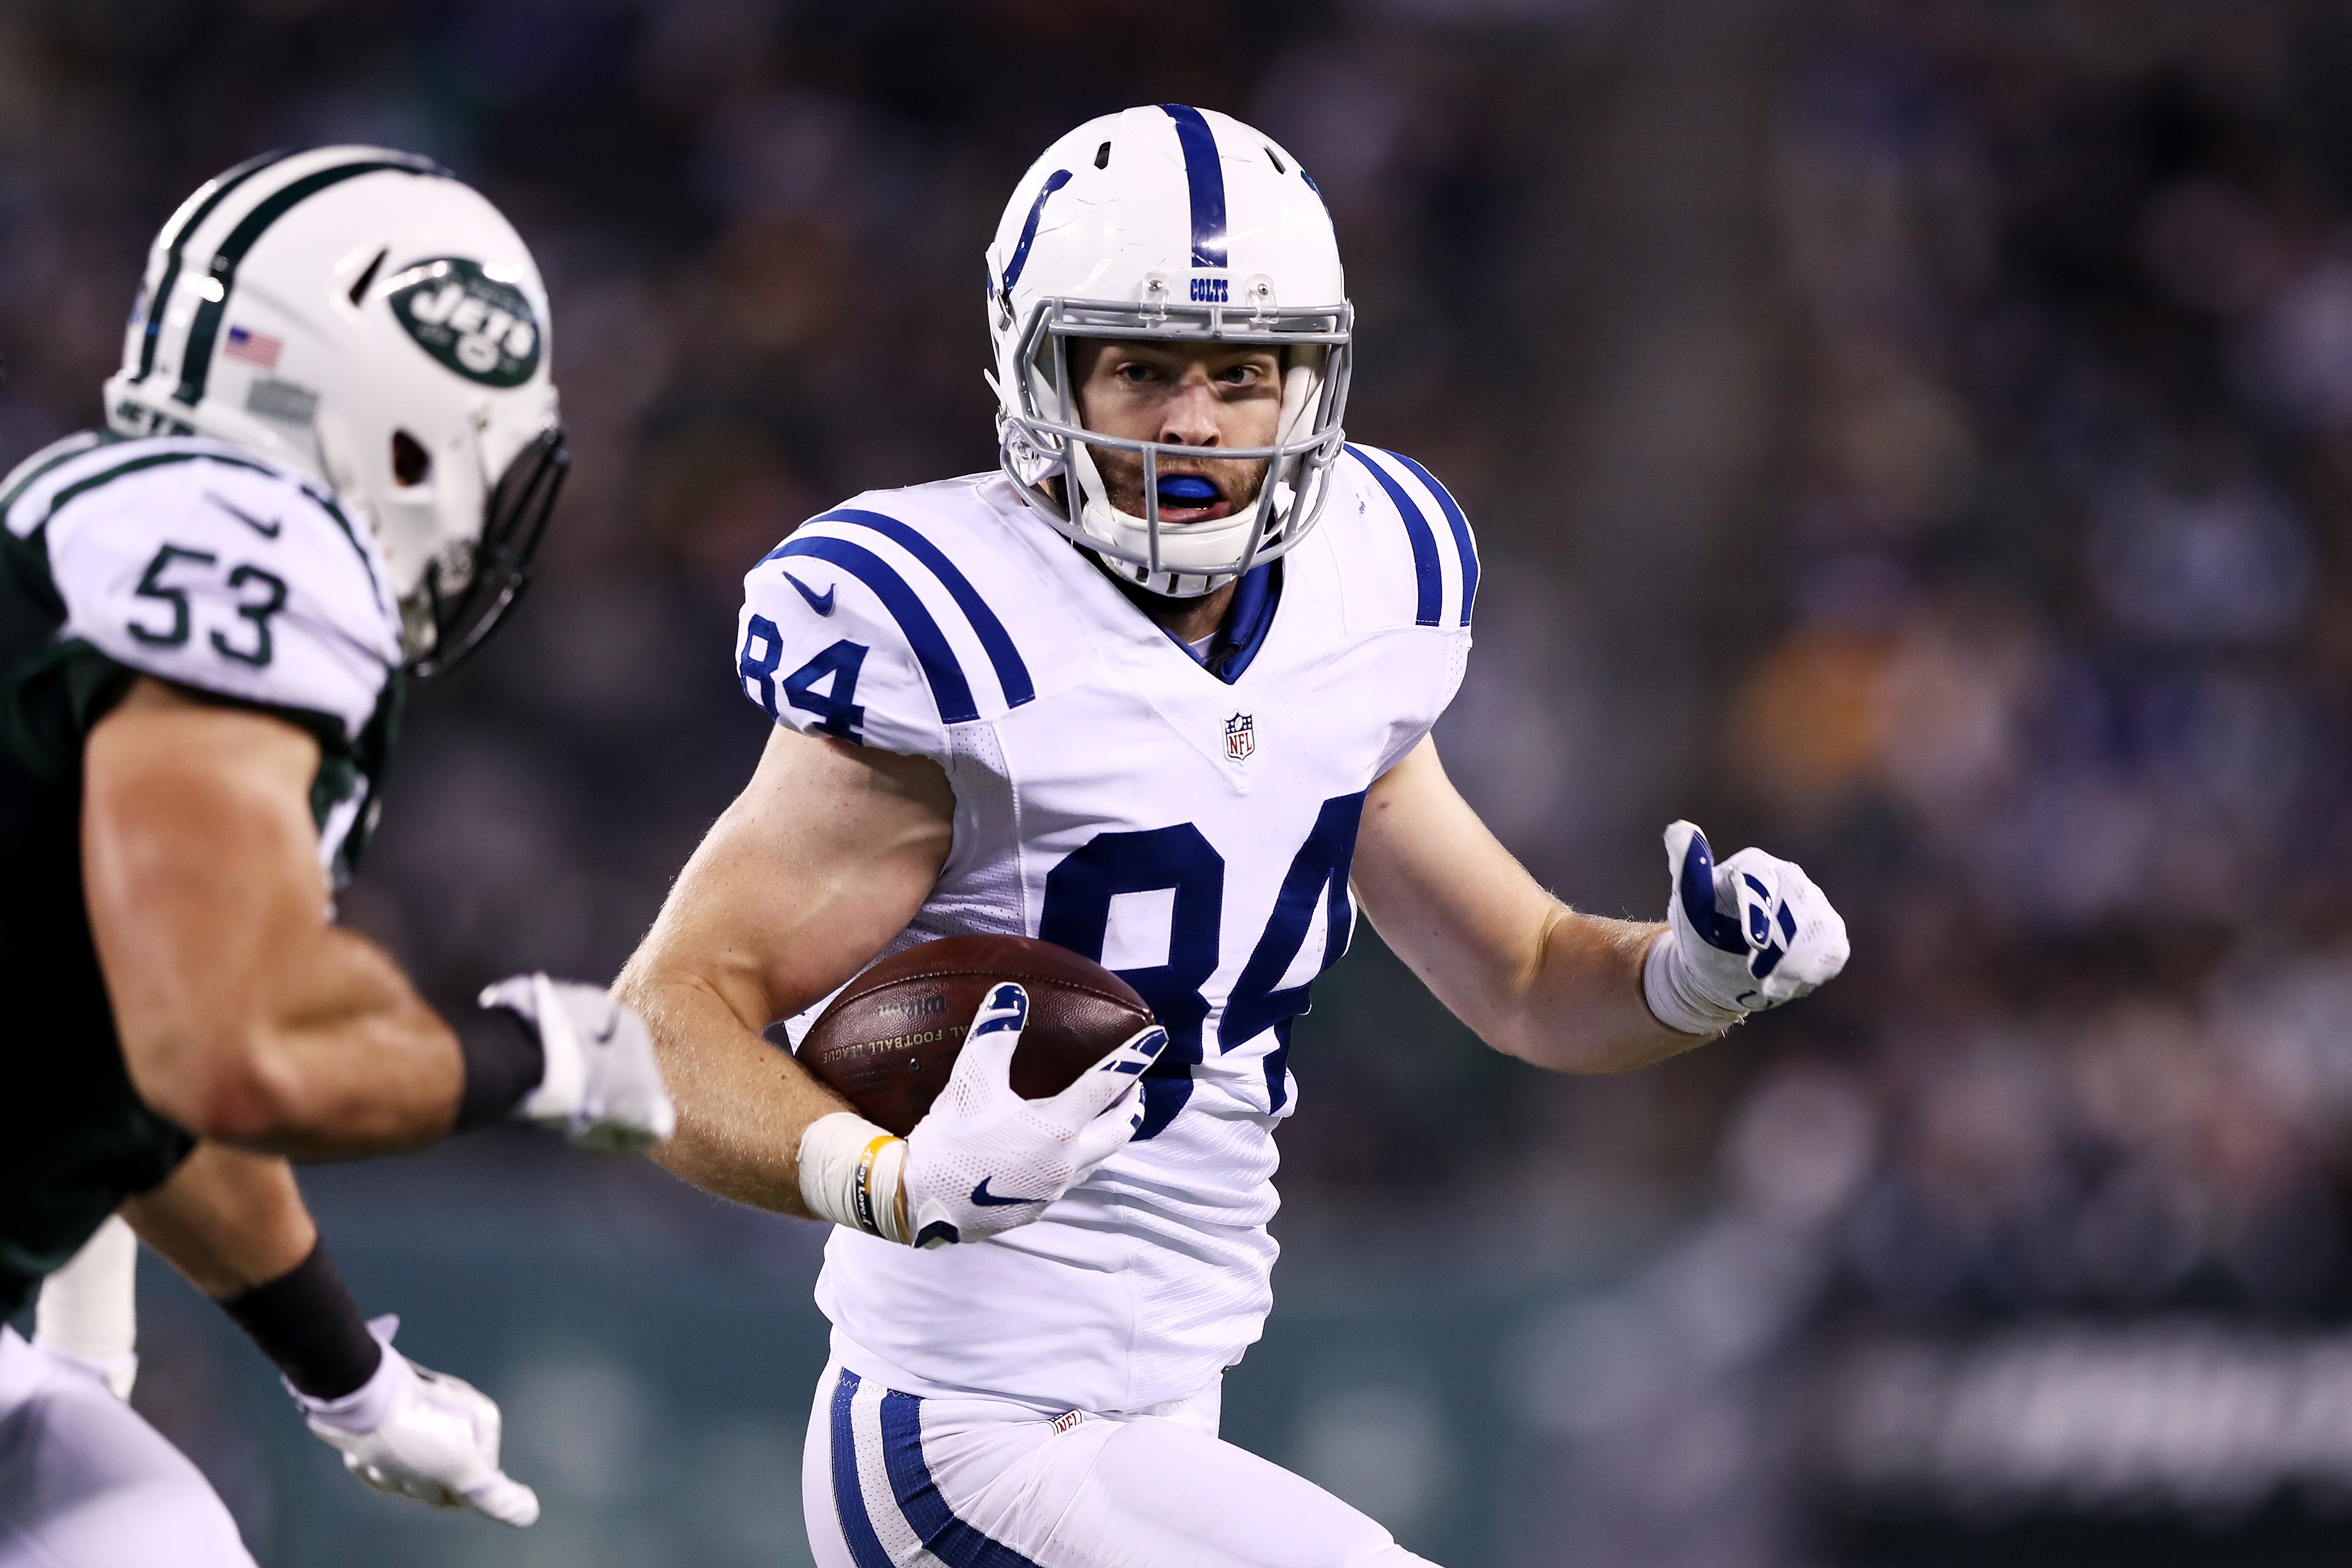 Jack Doyle of the Indianapolis Colts carries the ball against the New York Jets in the first half during their game at MetLife Stadium on December 5, 2016 in East Rutherford, New Jersey.